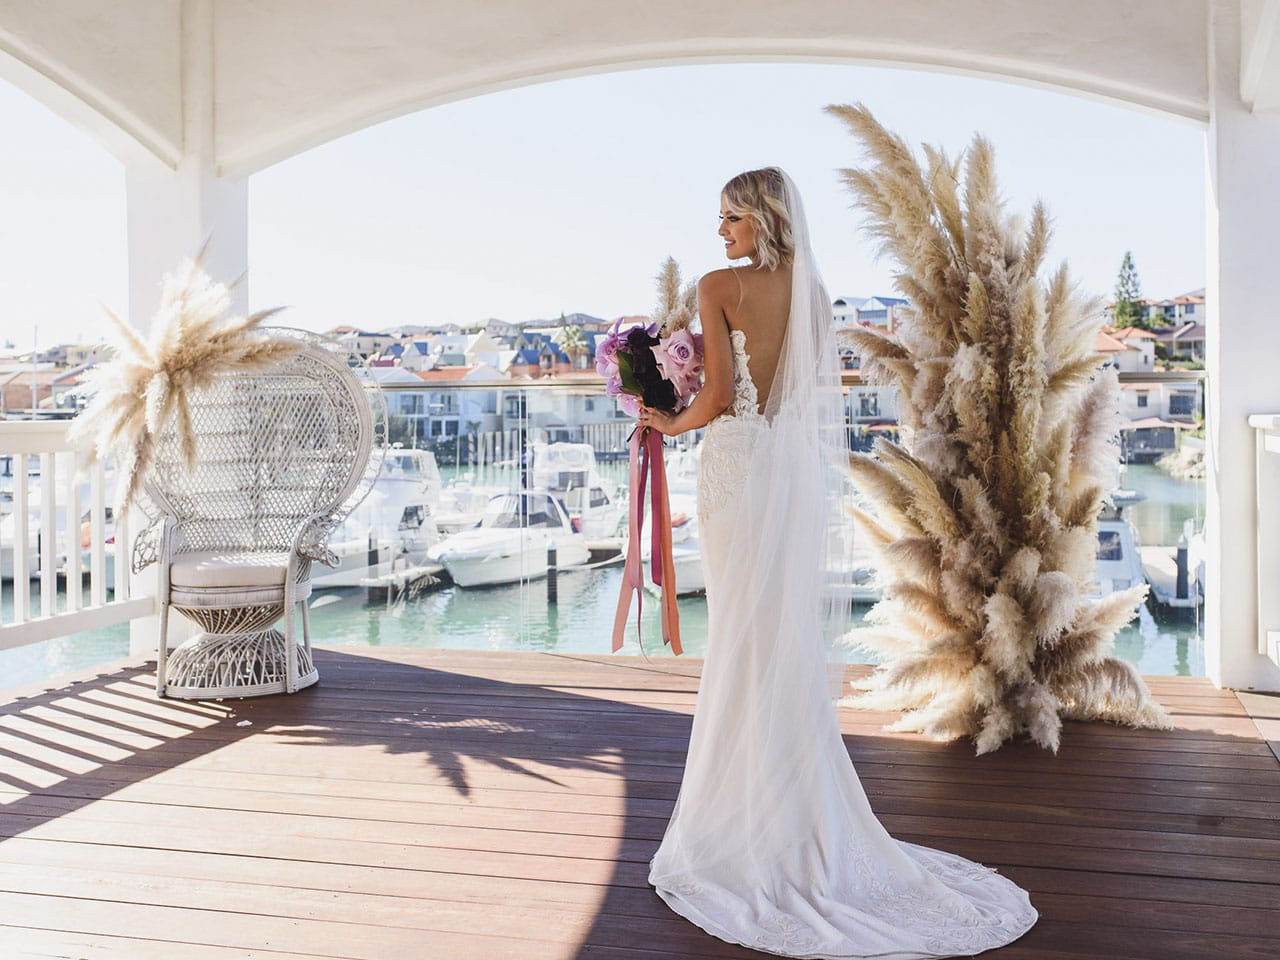 Harbourside wedding